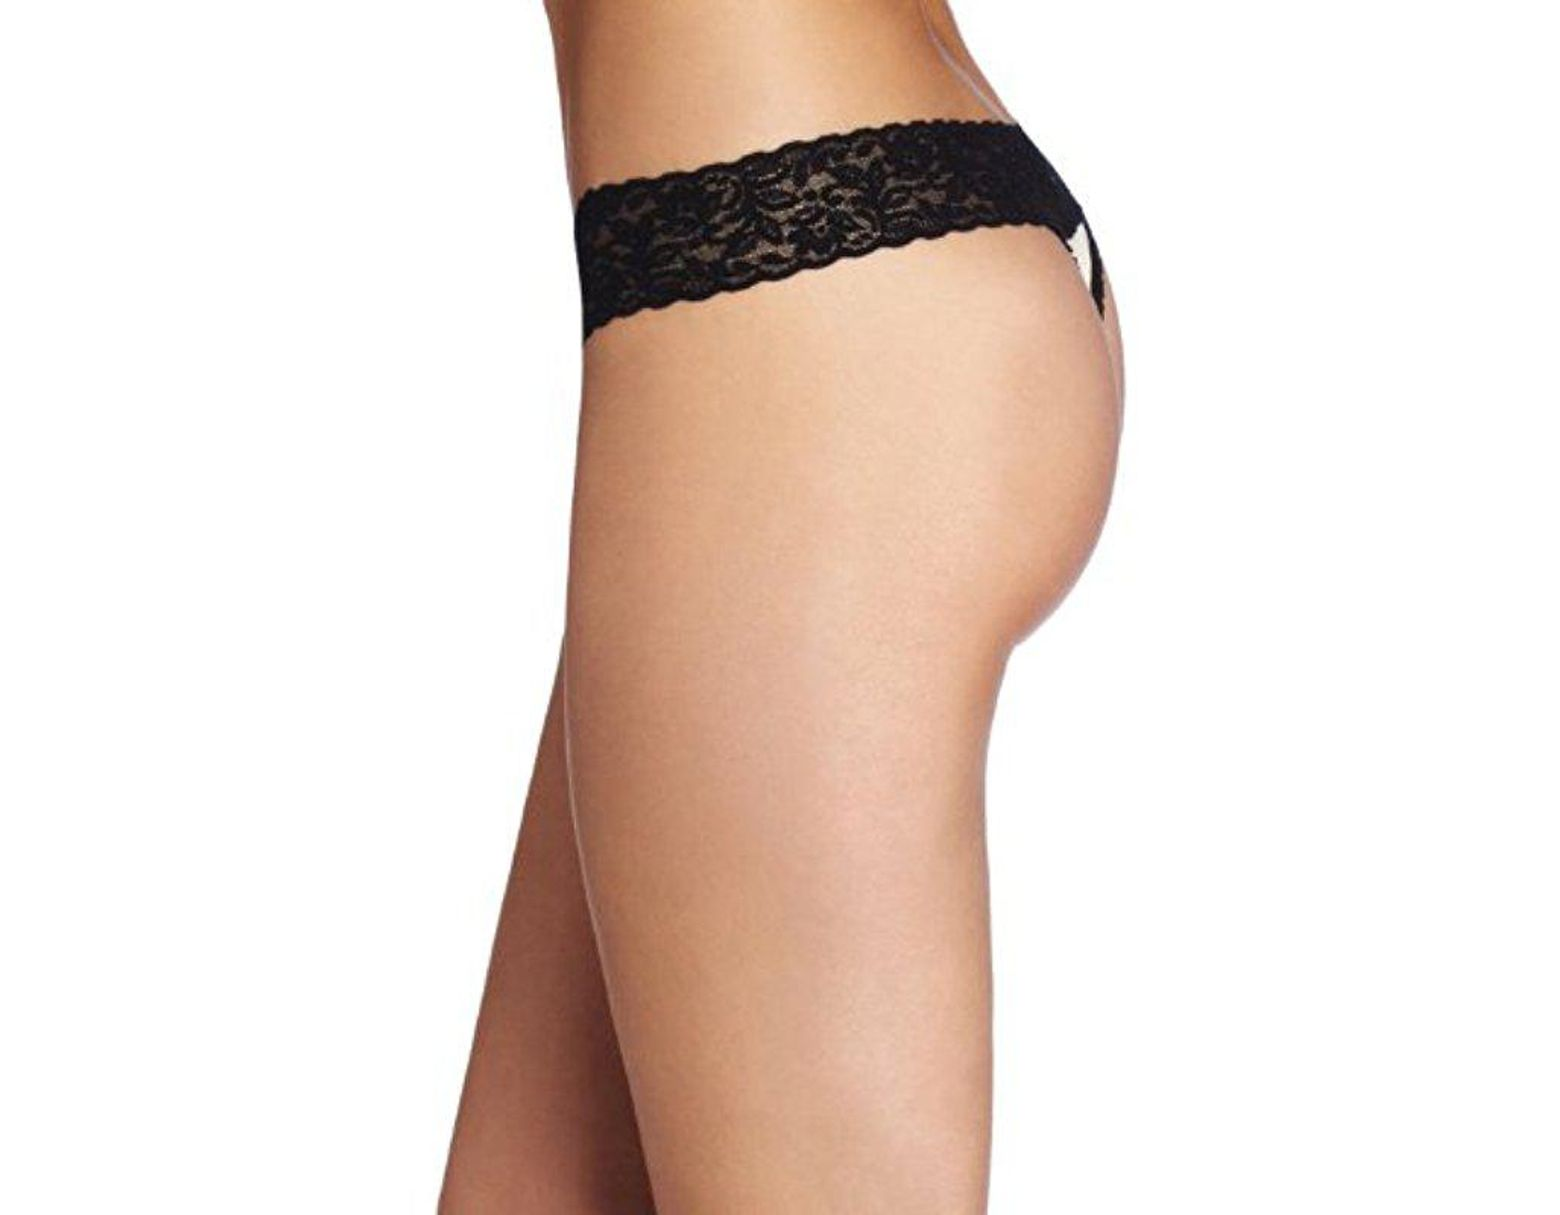 b04d4c12359d Lyst - Maidenform All Lace Thong Panty in Black - Save 30%